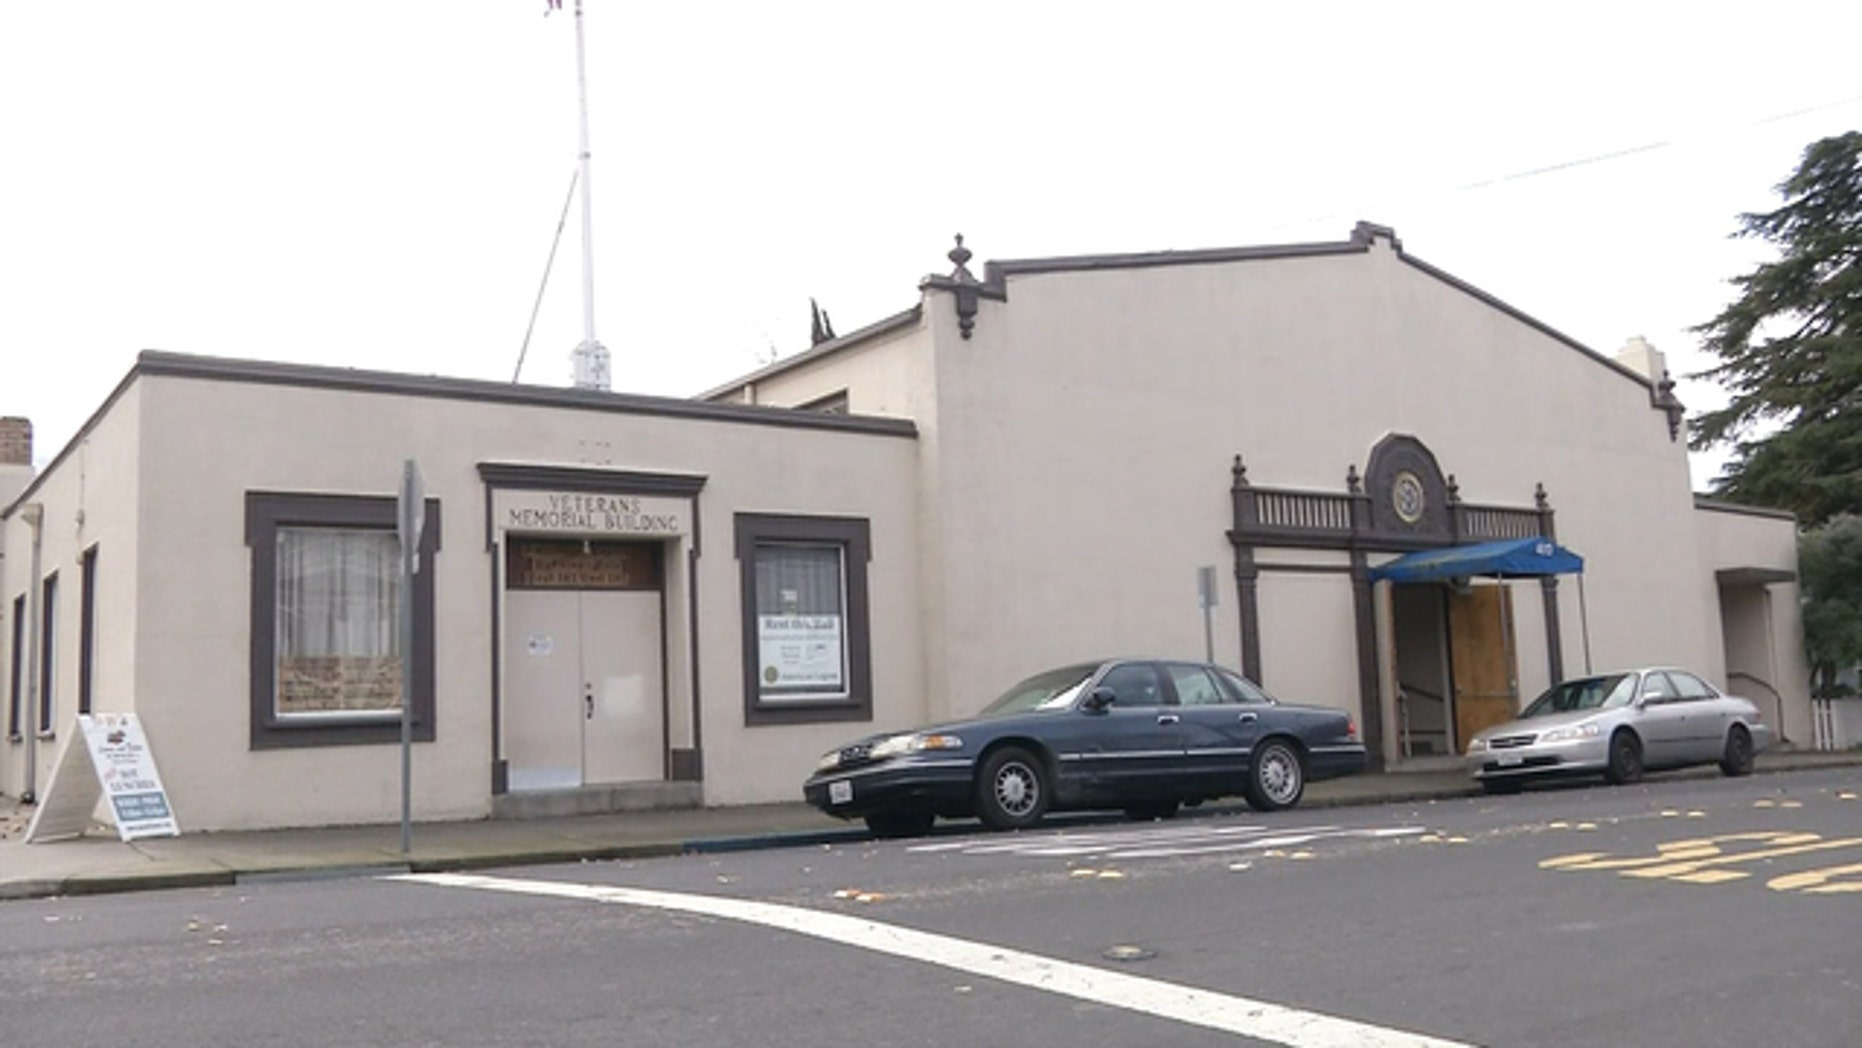 This undated photo shows an American Legion hall in Antioch, Calif. Three people died and five others were sickened after eating a Thanksgiving dinner served here by a local church.